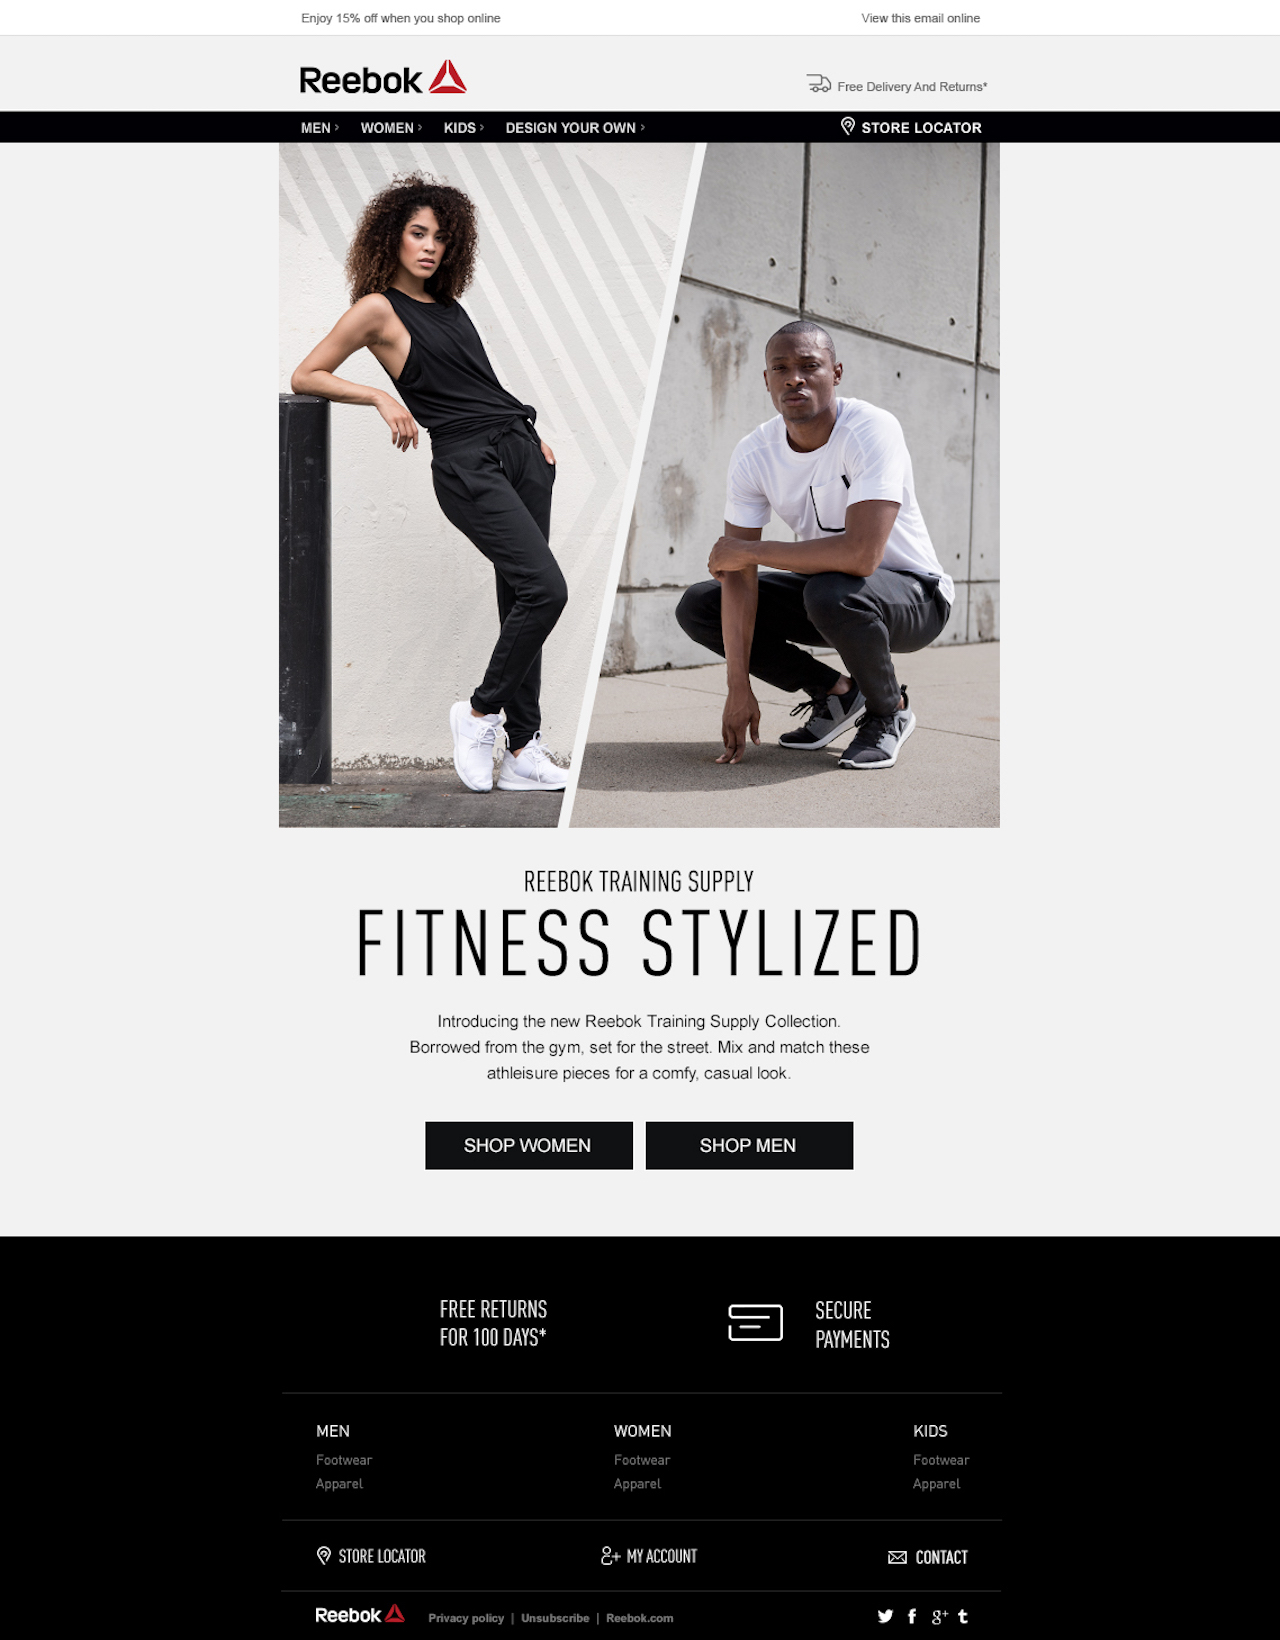 Reebok-Training-Supply-Newsletter.jpg